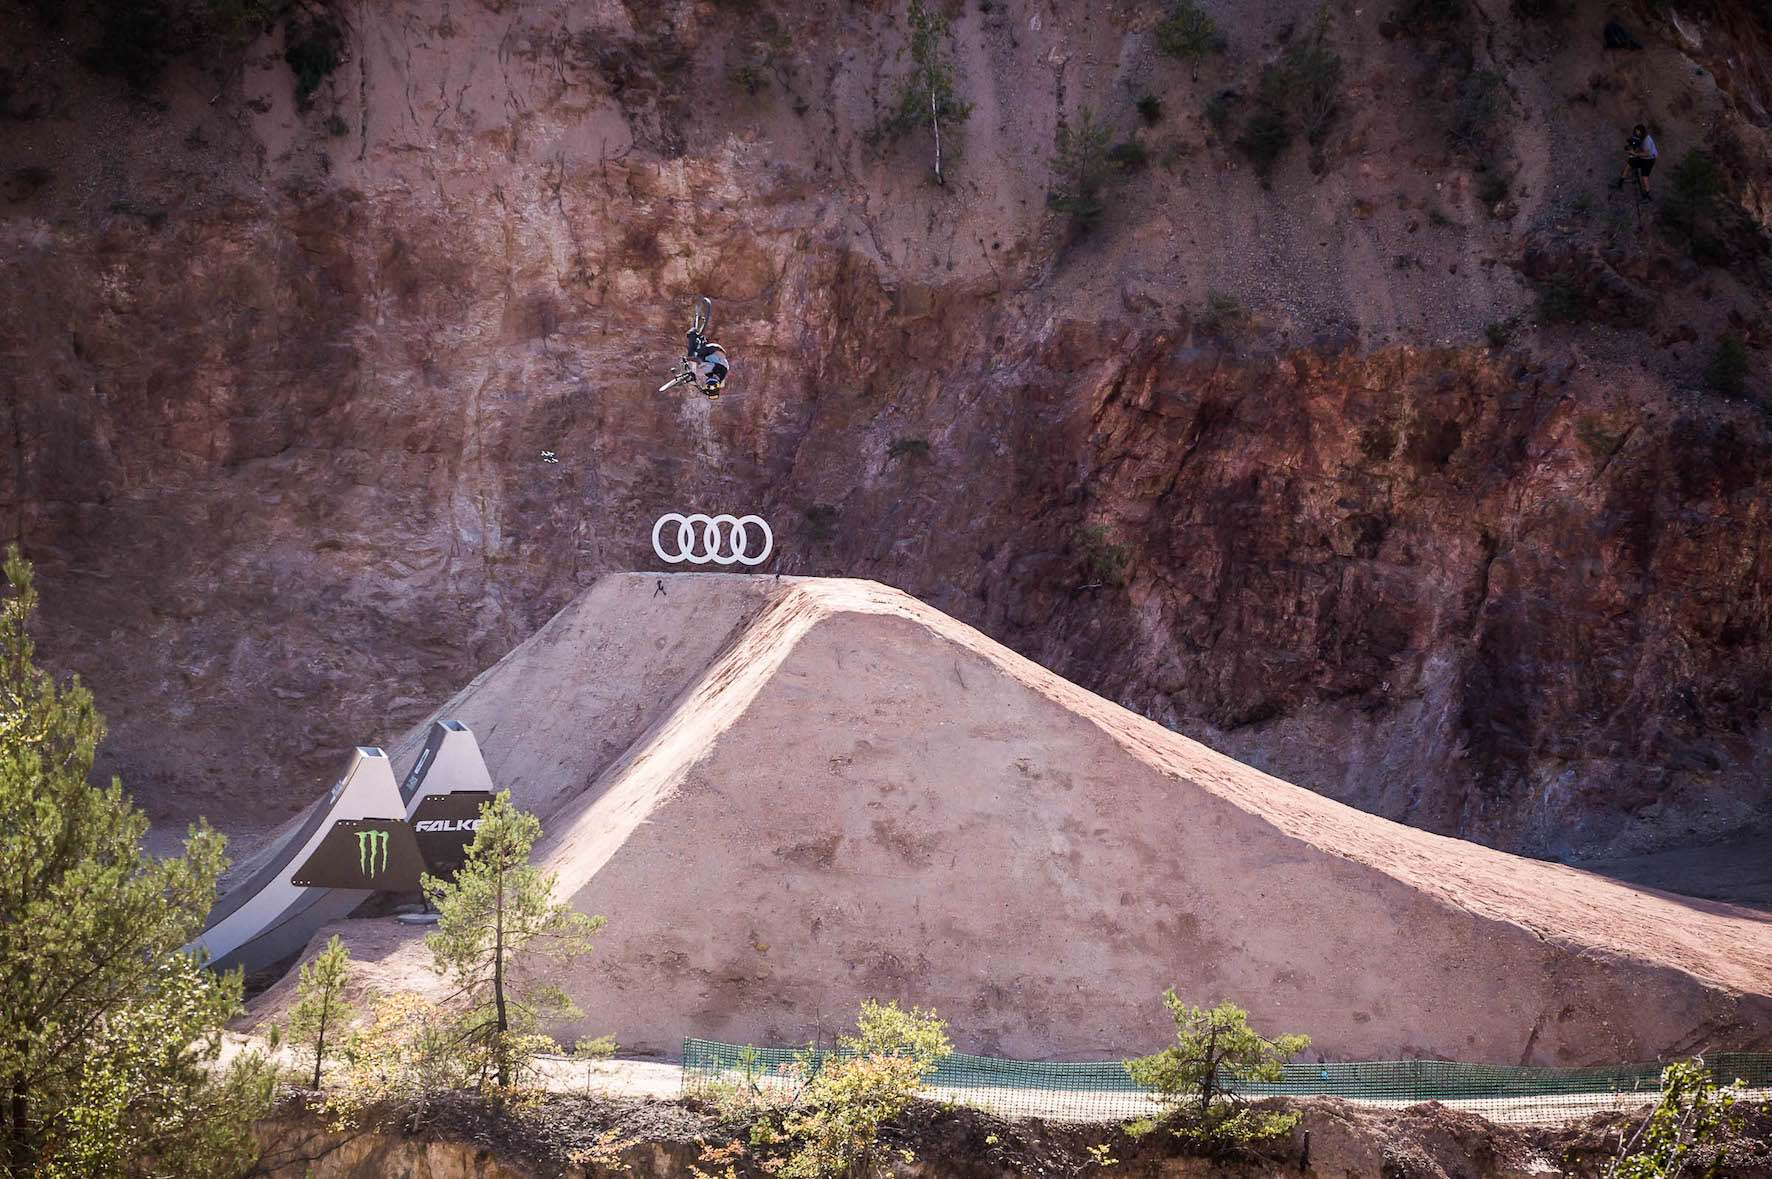 Patrick Schweika talks about the Audi Nines Slopestyle MTB event